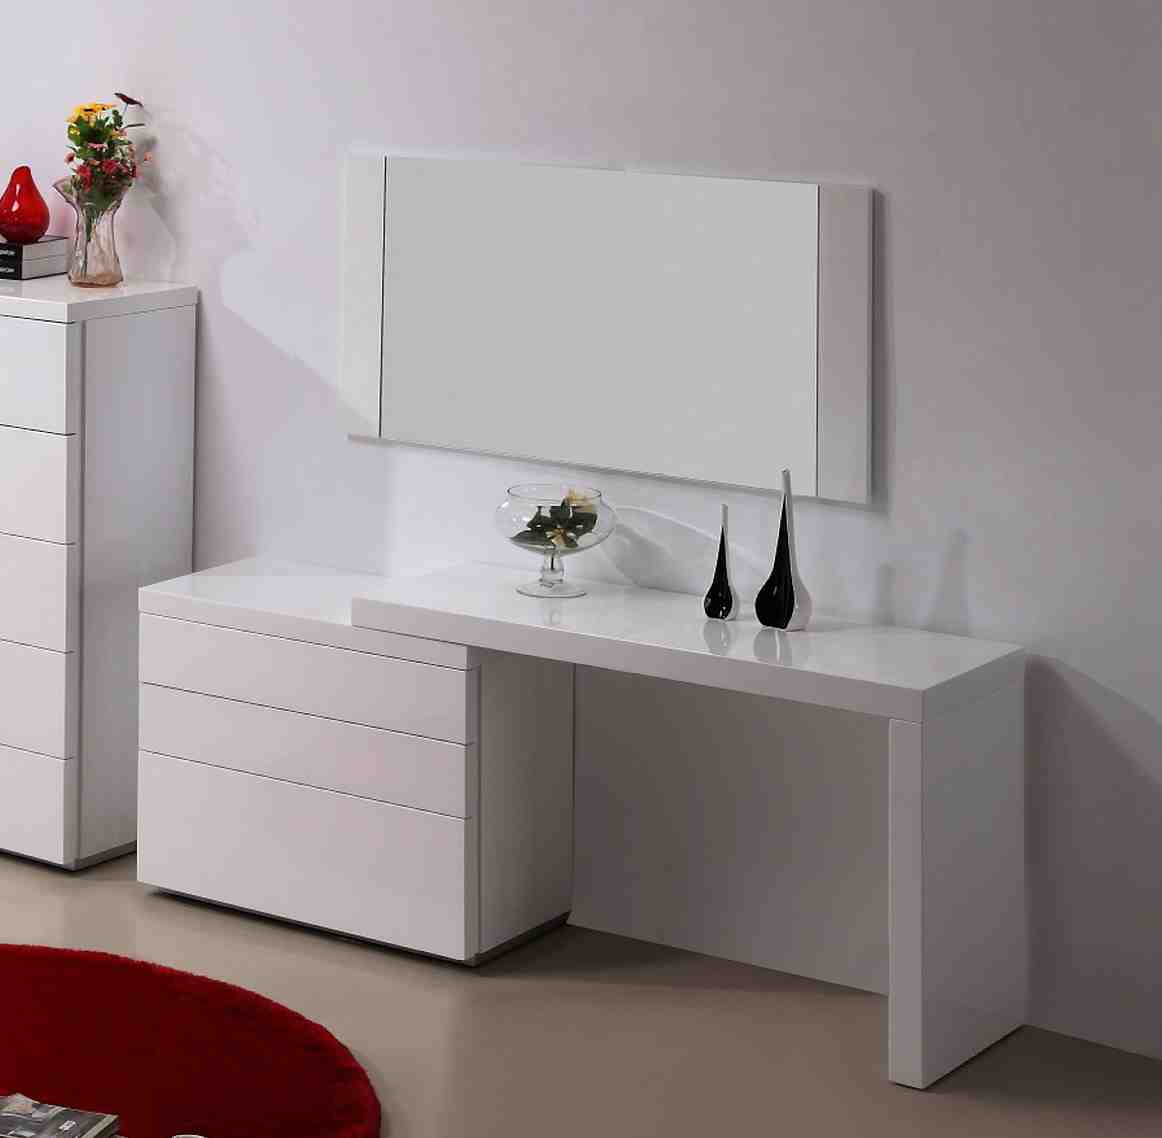 Vanity dresser ikea home furniture design for Ikea bedroom furniture dressers